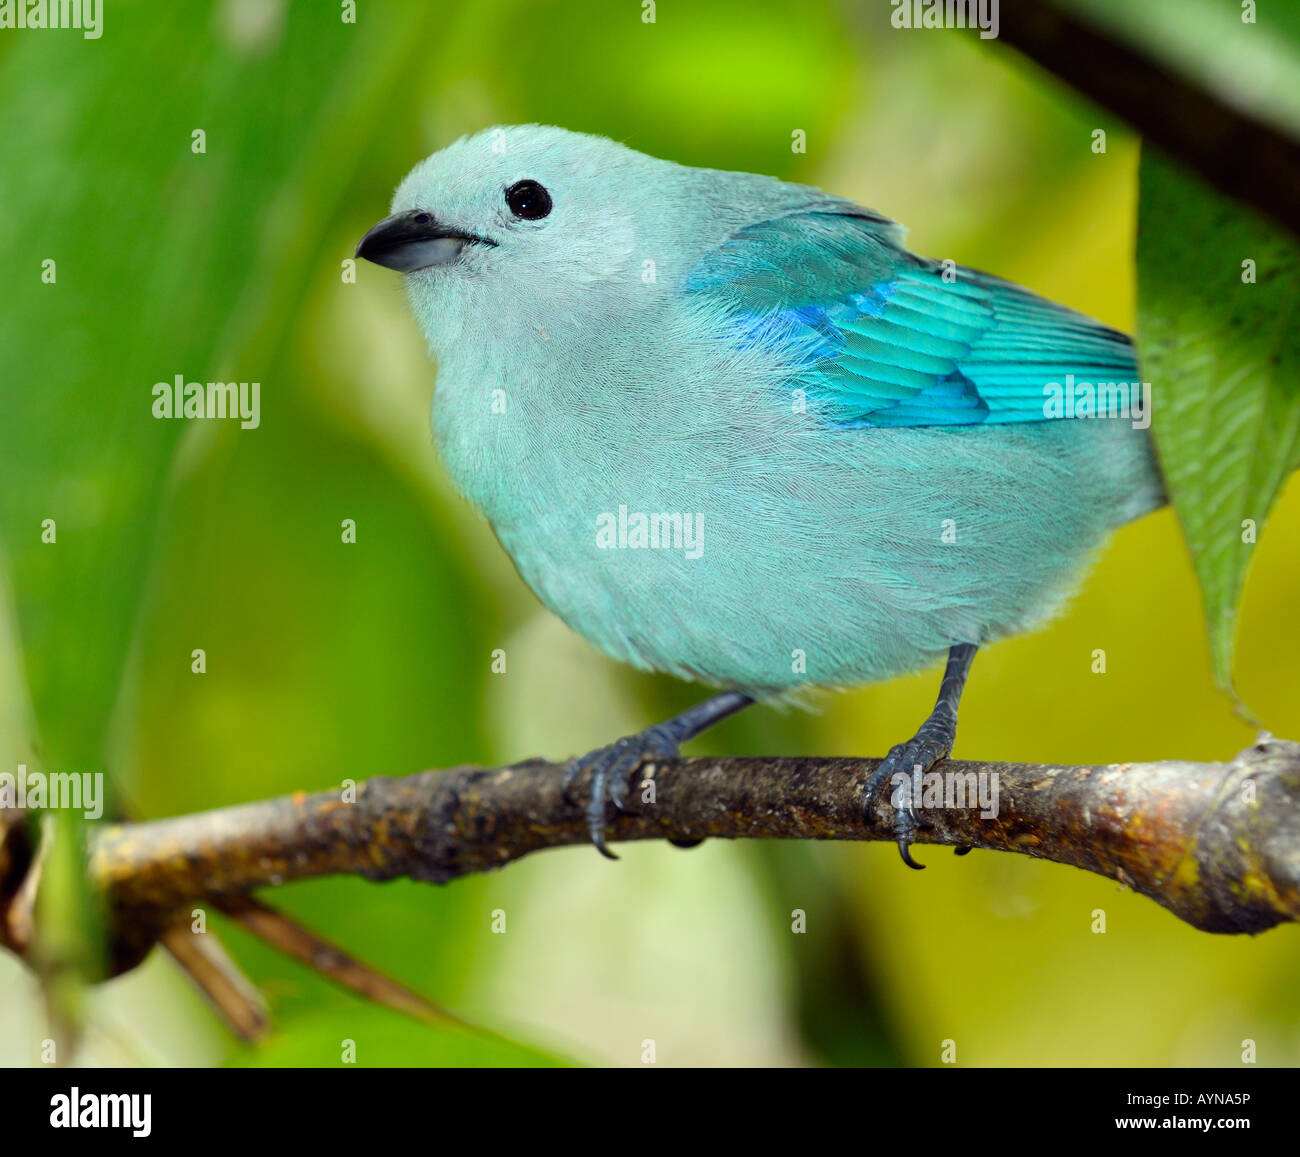 Blue gray Tanager Thraupis episcopus songbird close up in Costa Rica - Stock Image